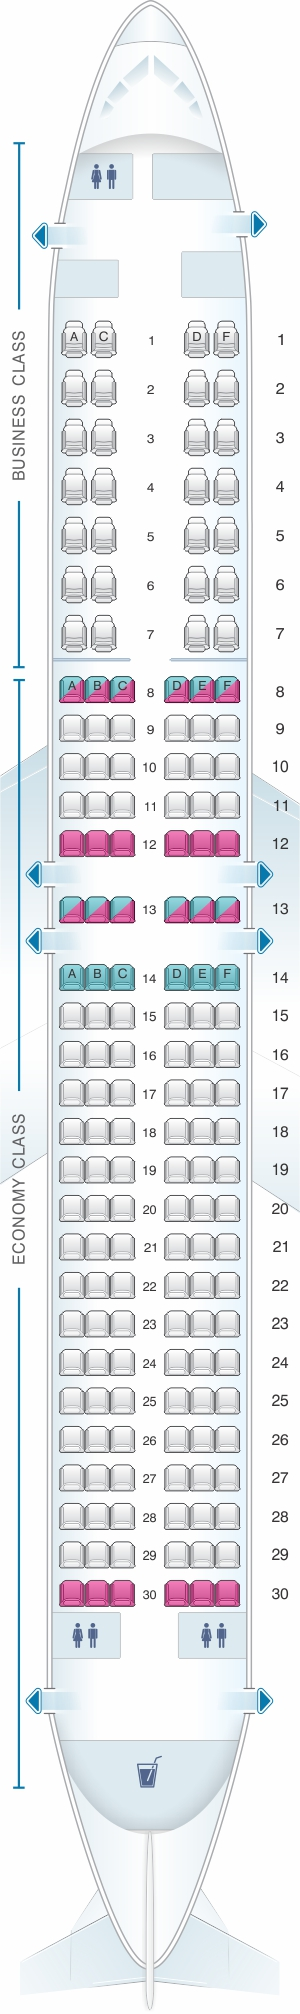 Seat map for SpiceJet Boeing B737 900 config.2